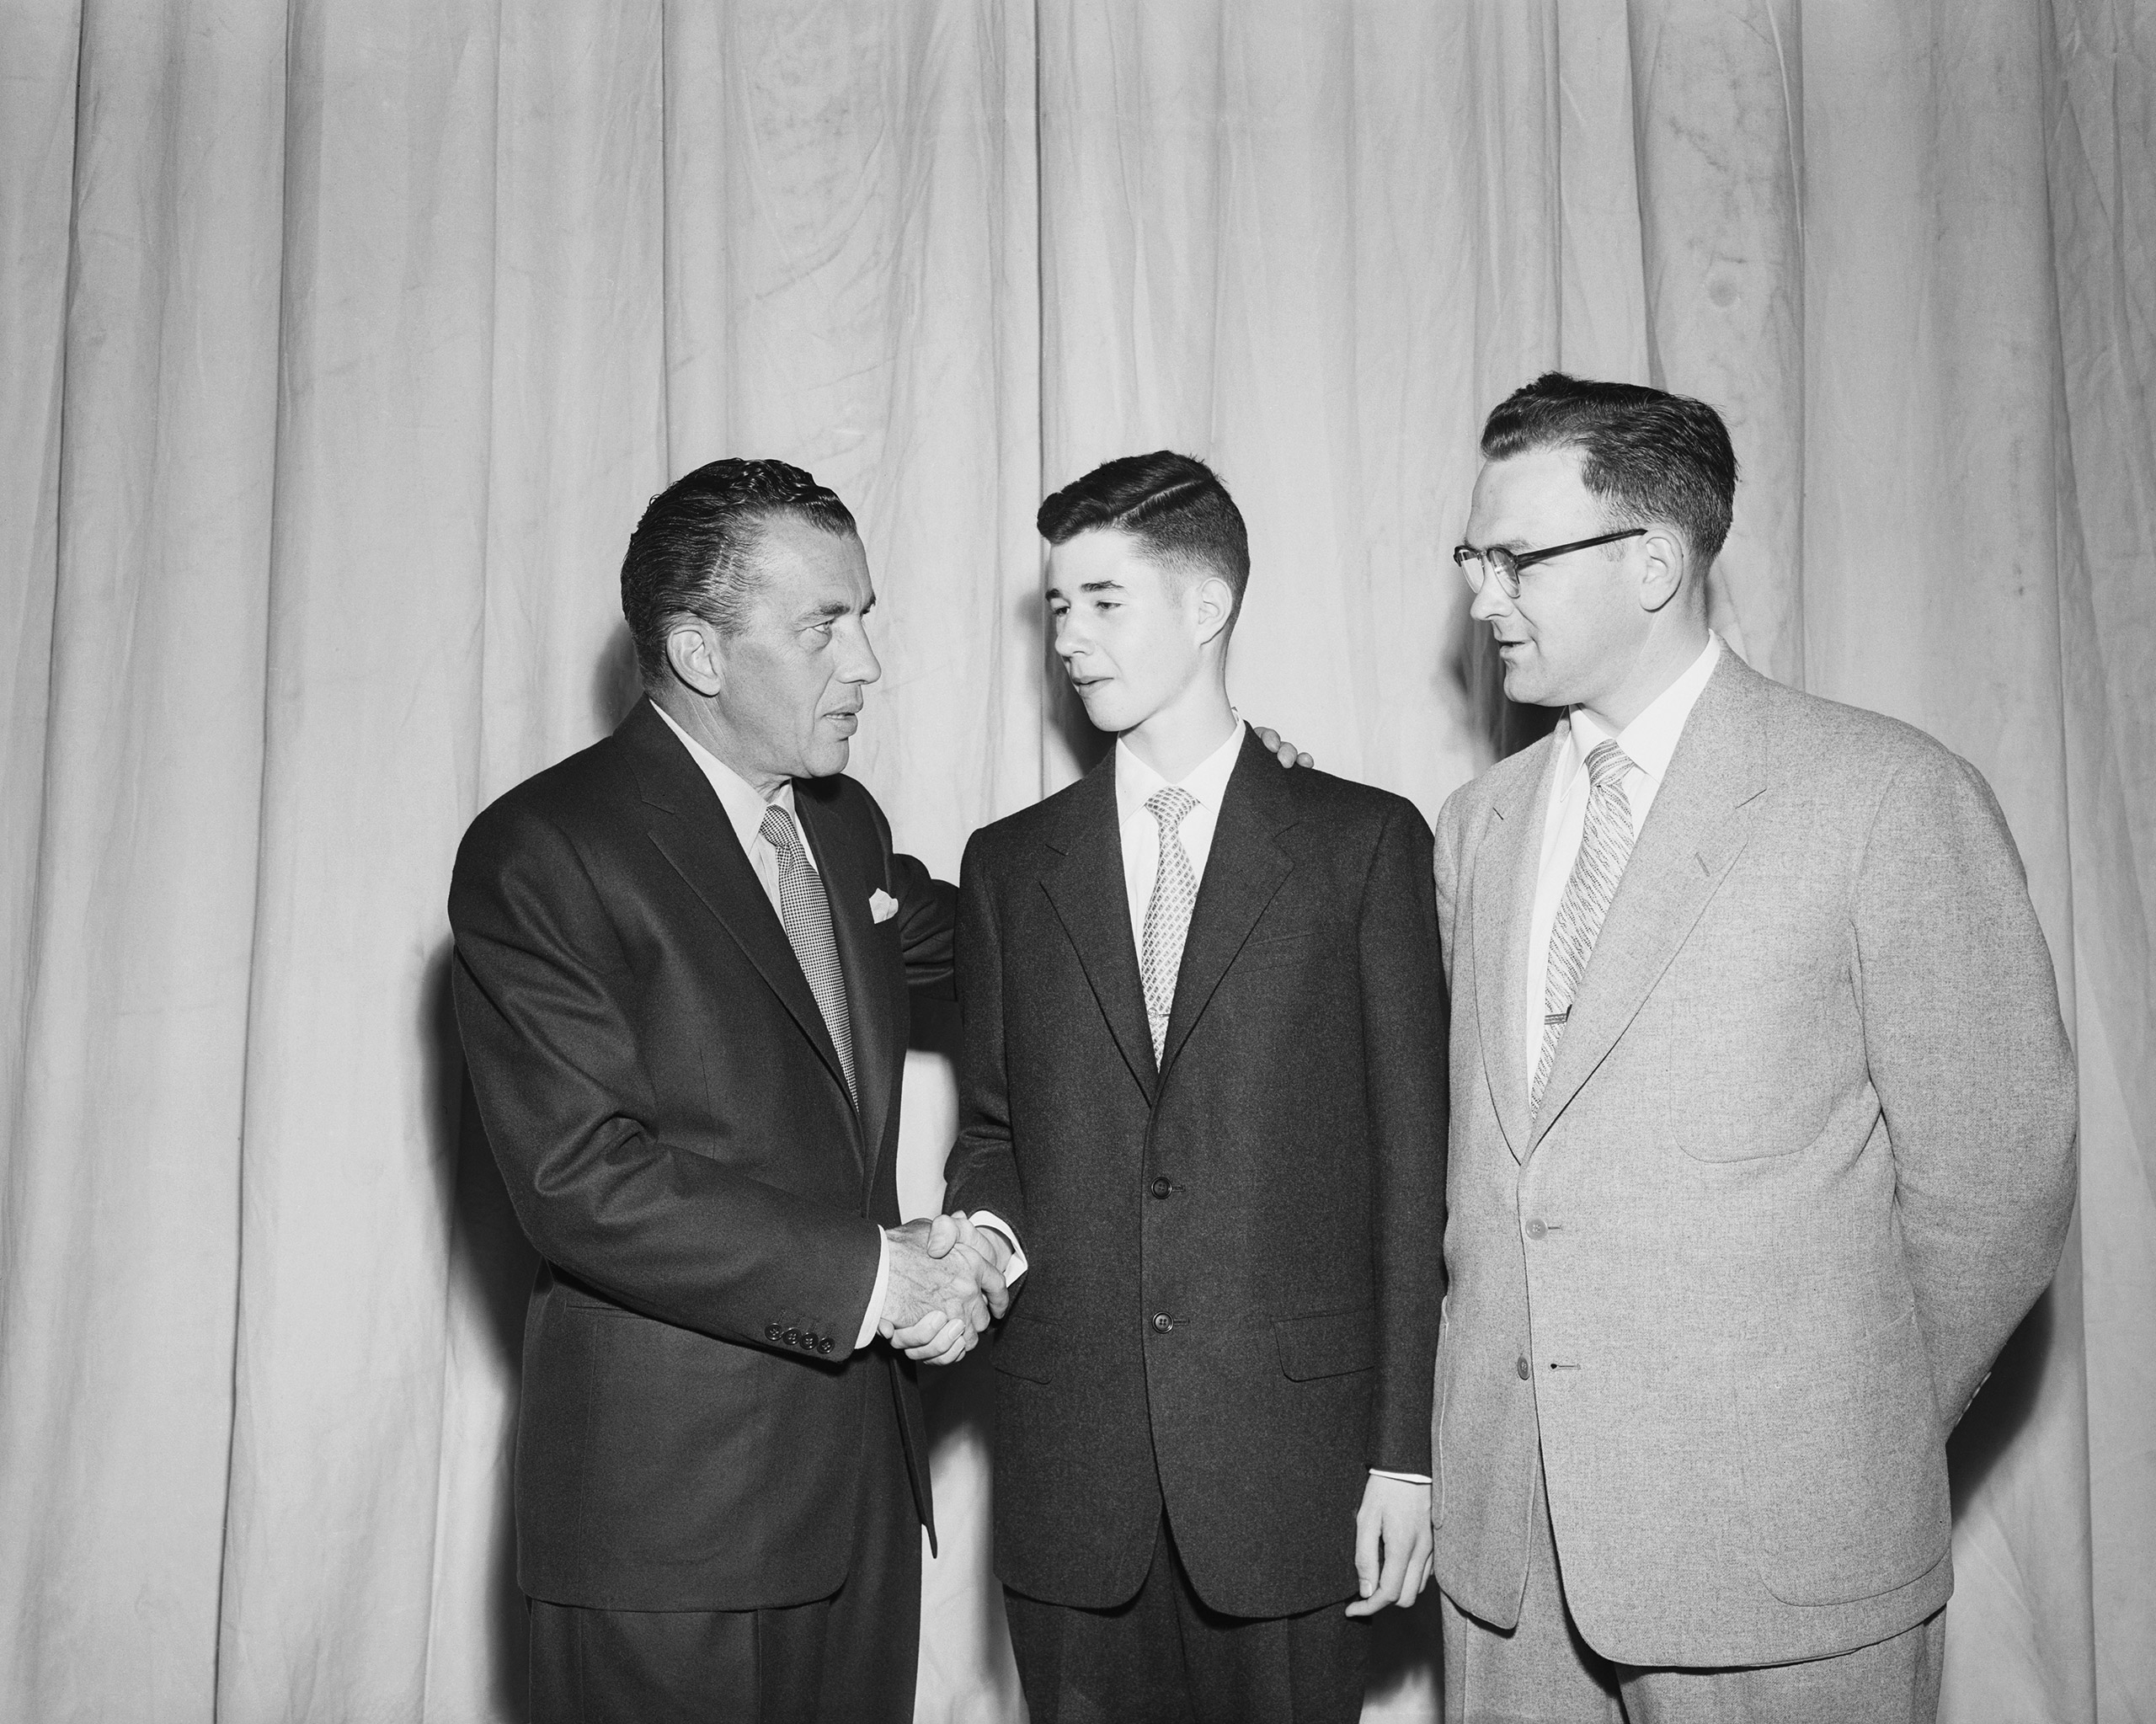 Fourteen-year-old eighth grader William Cashore of Norristown, Pennsylvania, gets congratulated by television personality Ed Sullivan. (Right: Willard Widerberg, selected Teacher of the Year by the National Education Association.)